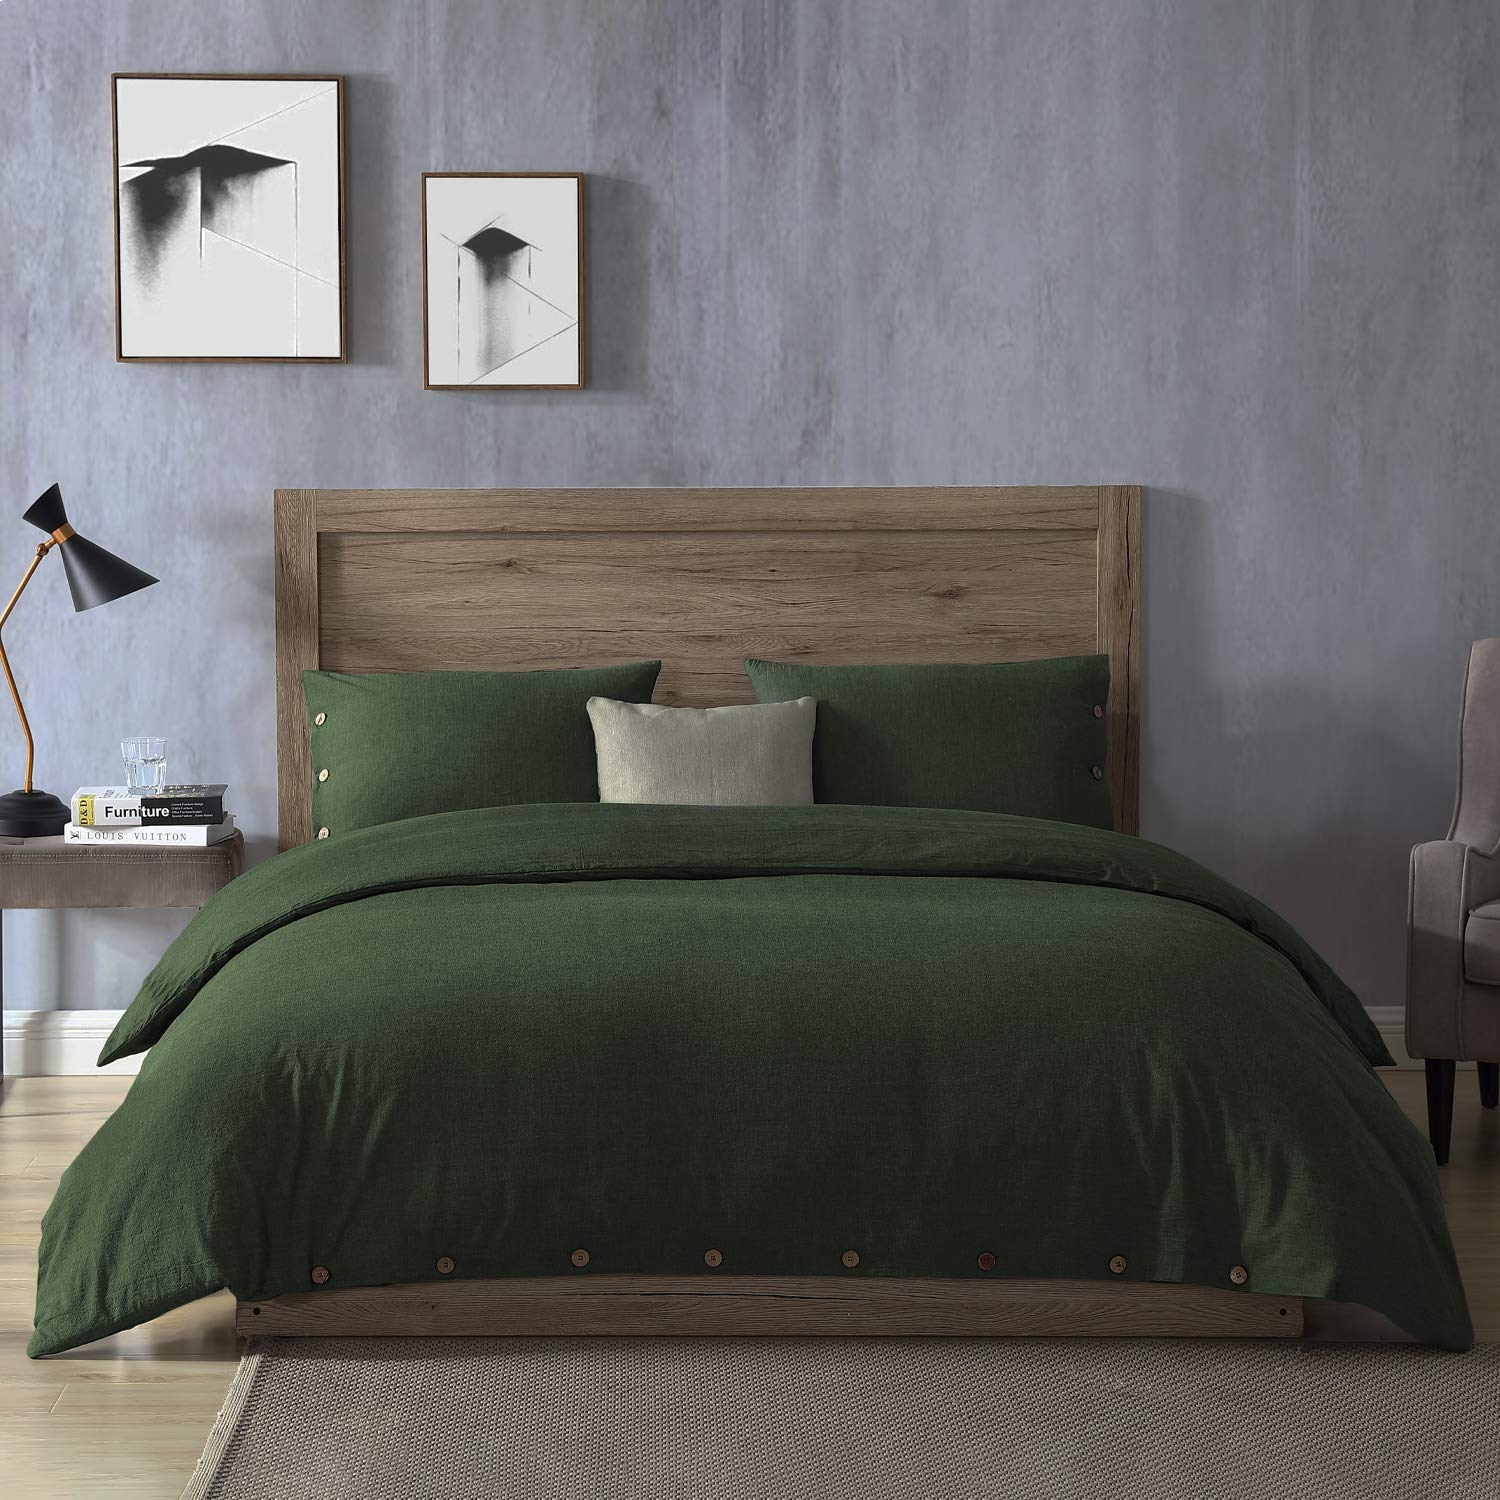 Exq Home Olivine Green Duvet Cover Set King Size 3 Pieces Super Soft Wrinkled Vintage Bedding Down Comforter Cover With Button Closure Machine Washable Breathable Microfiber Polyester Duvet Cover